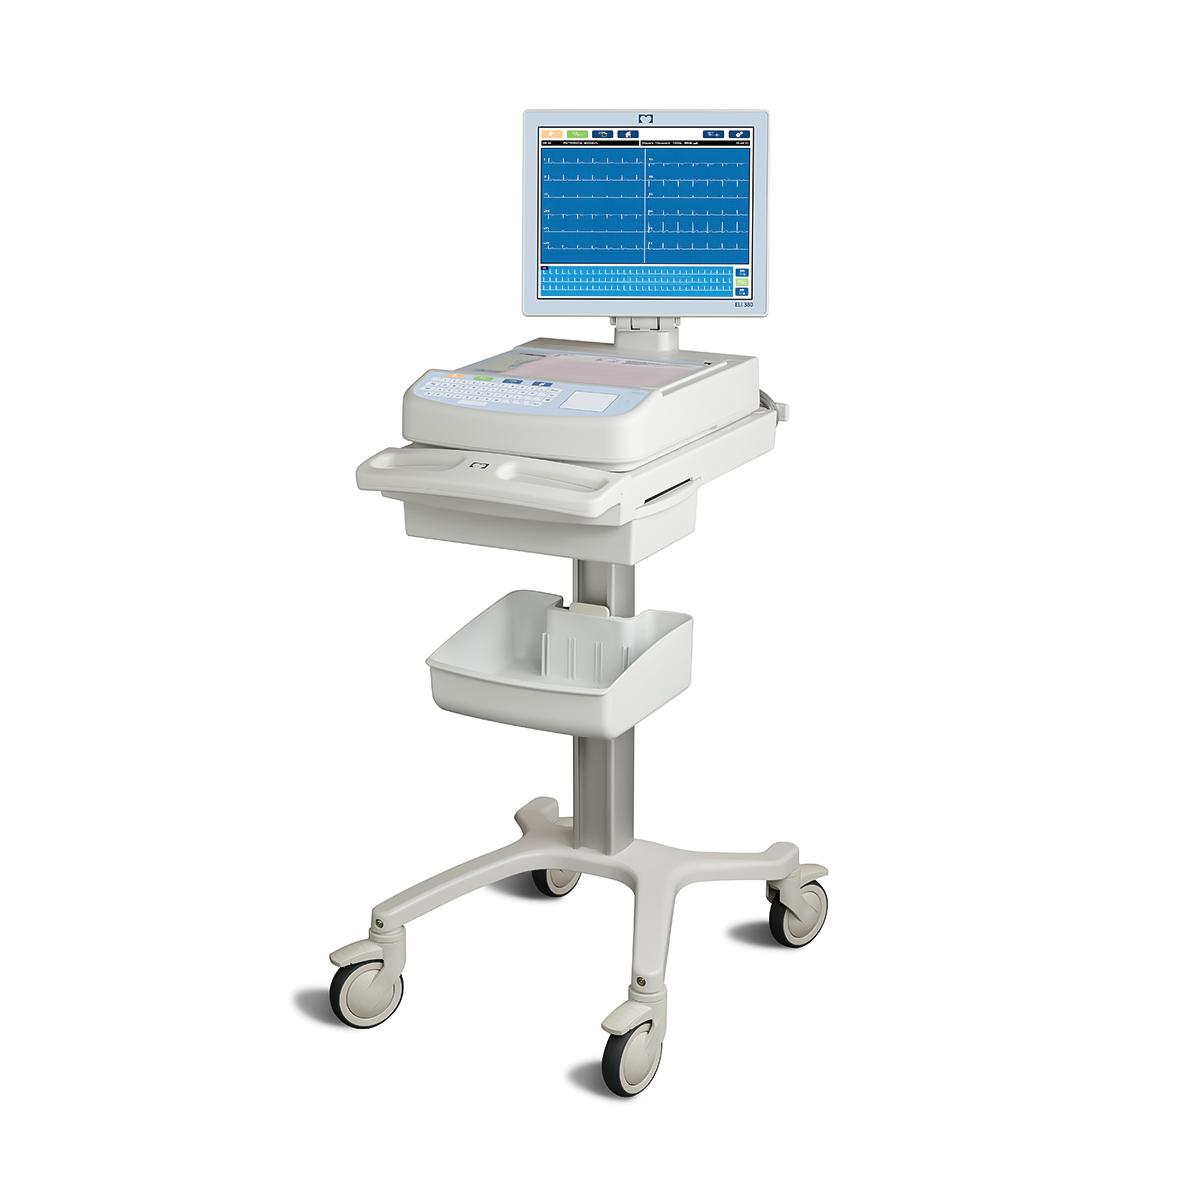 ELI 380 Resting Electrocardiograph, 3/4 view on rolling stand